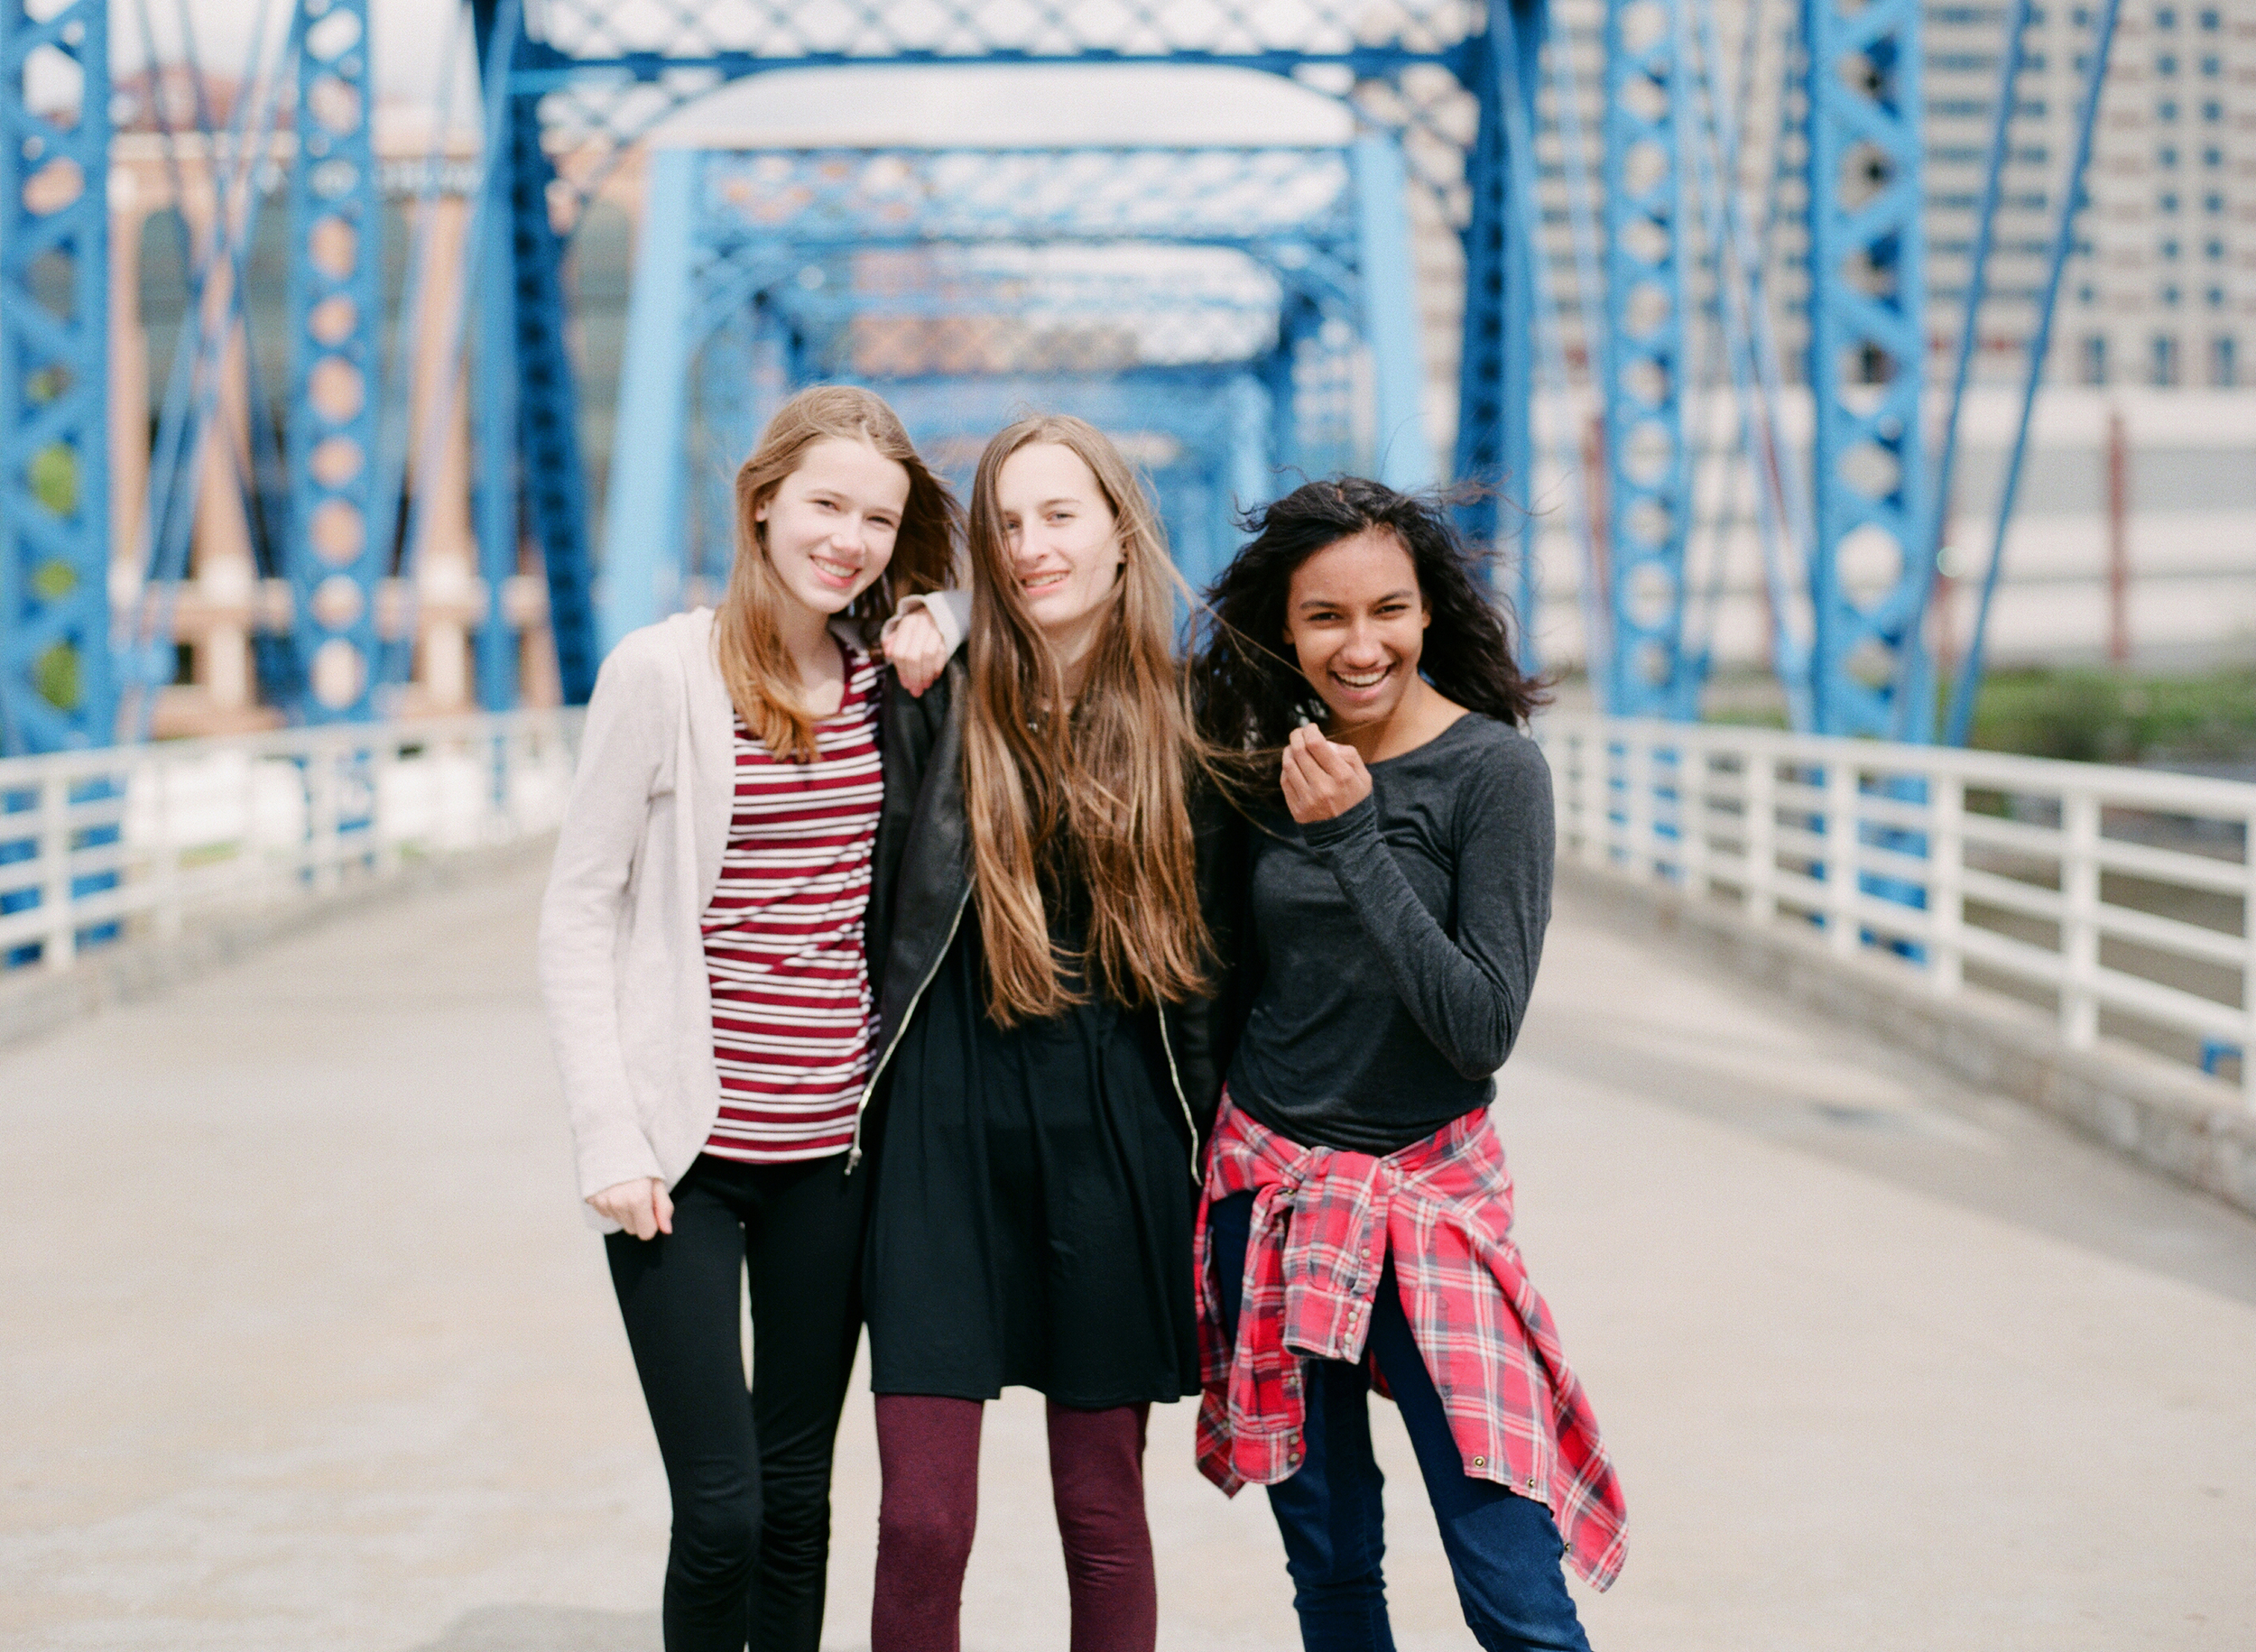 Grand Rapids high school portraits at the Blue Bridge